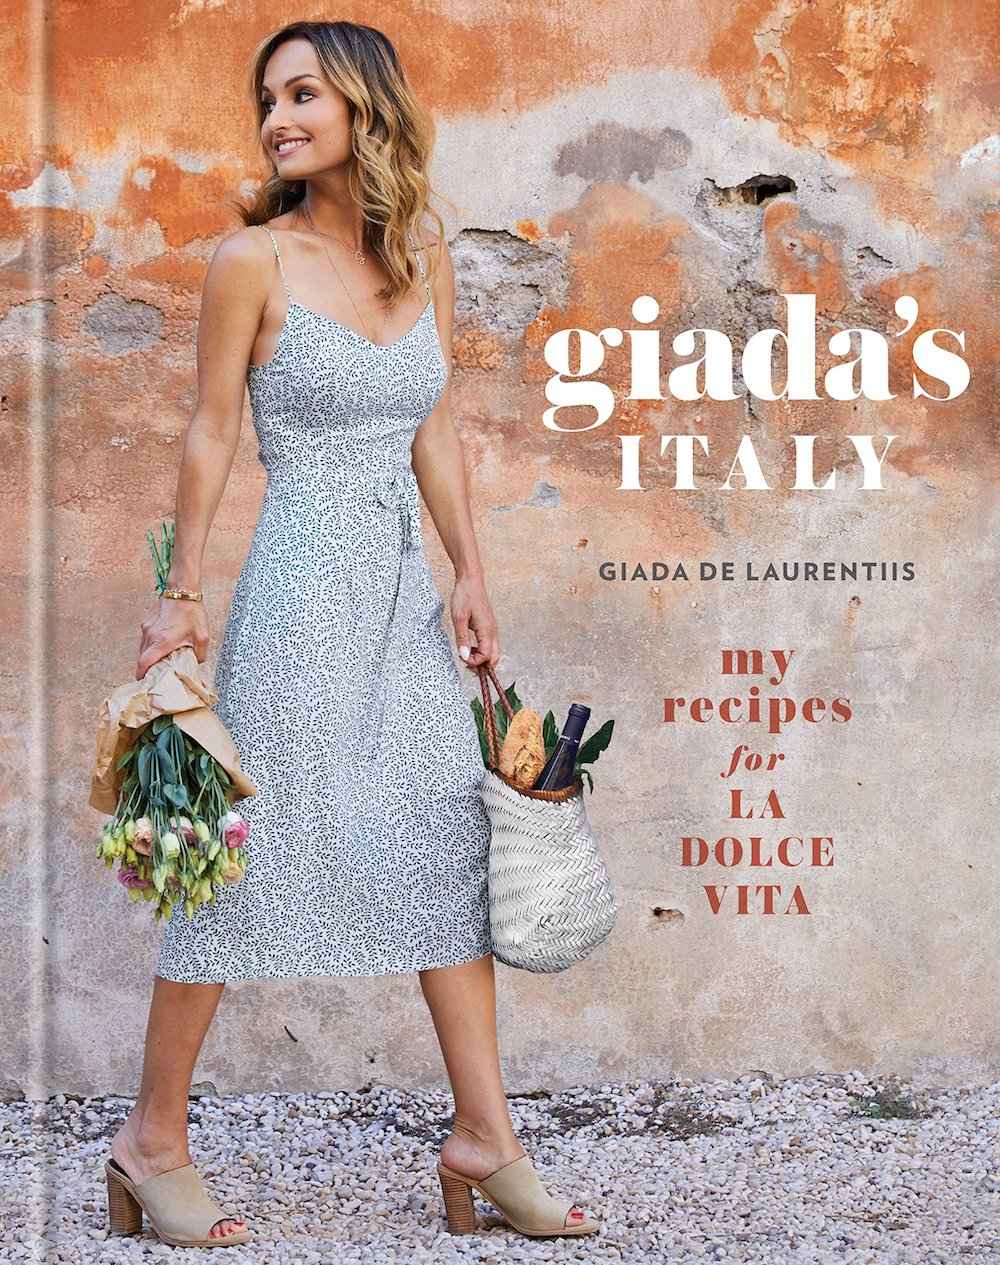 Giada's Italy: My Recipes for La Dolce Vita cook book by Giada De Laurentiis, cookbook ideas